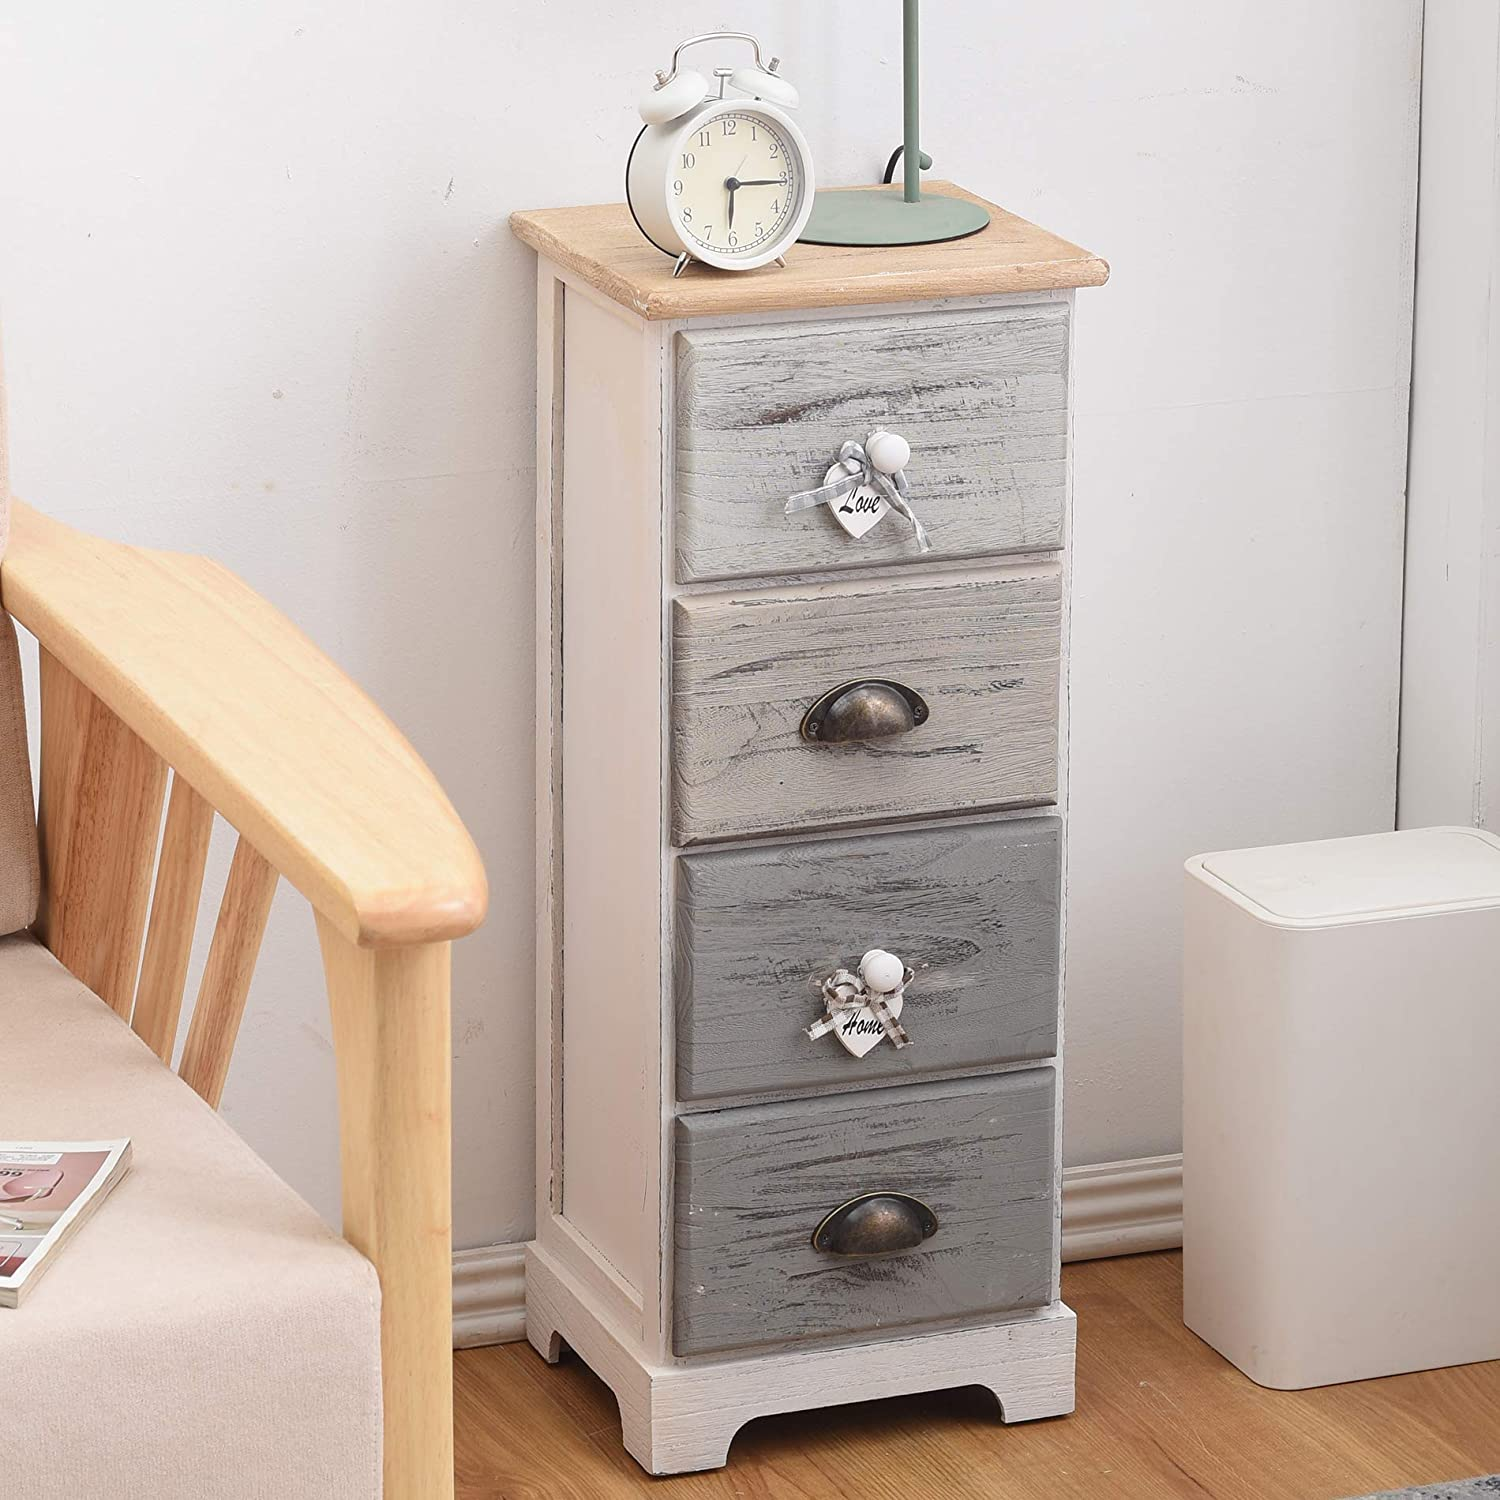 74 x 29 x 24,5 cm H x W x D - Art Rebecca Mobili Chest of Drawer 4 Drawers Paulownia Wood White Blue Shabby Gray Seagoing Style Bedroom Bathroom RE4482